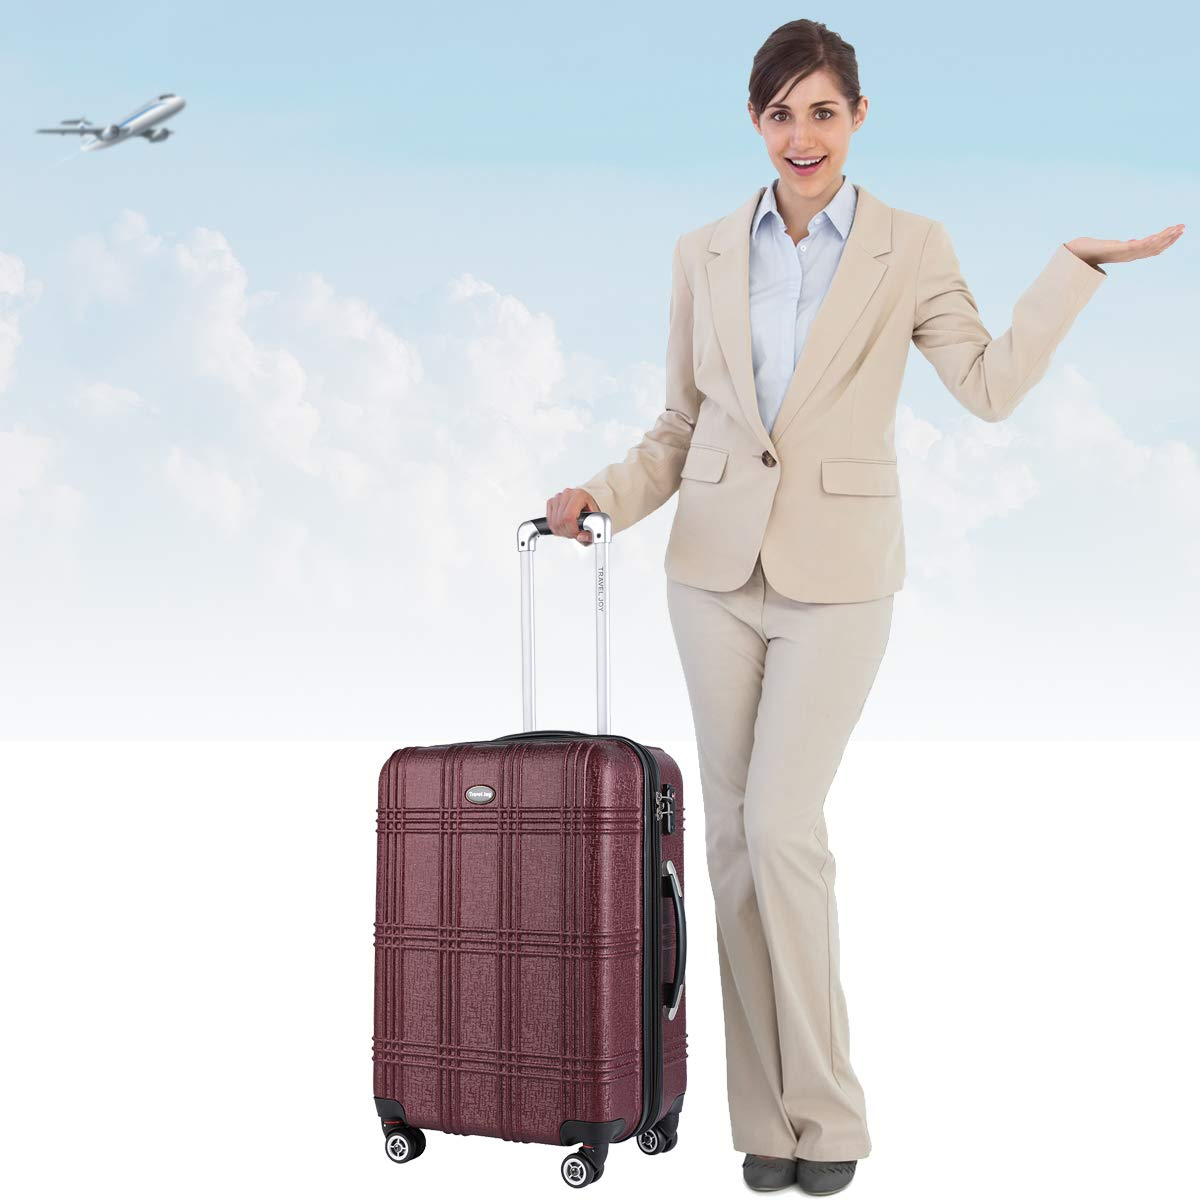 Expandable Carry On Luggage Lightweight Spinner Carry Ons TSA Hardside Luggage Suitcase, 20 inches (BURGUNDY) by Travel Joy (Image #6)